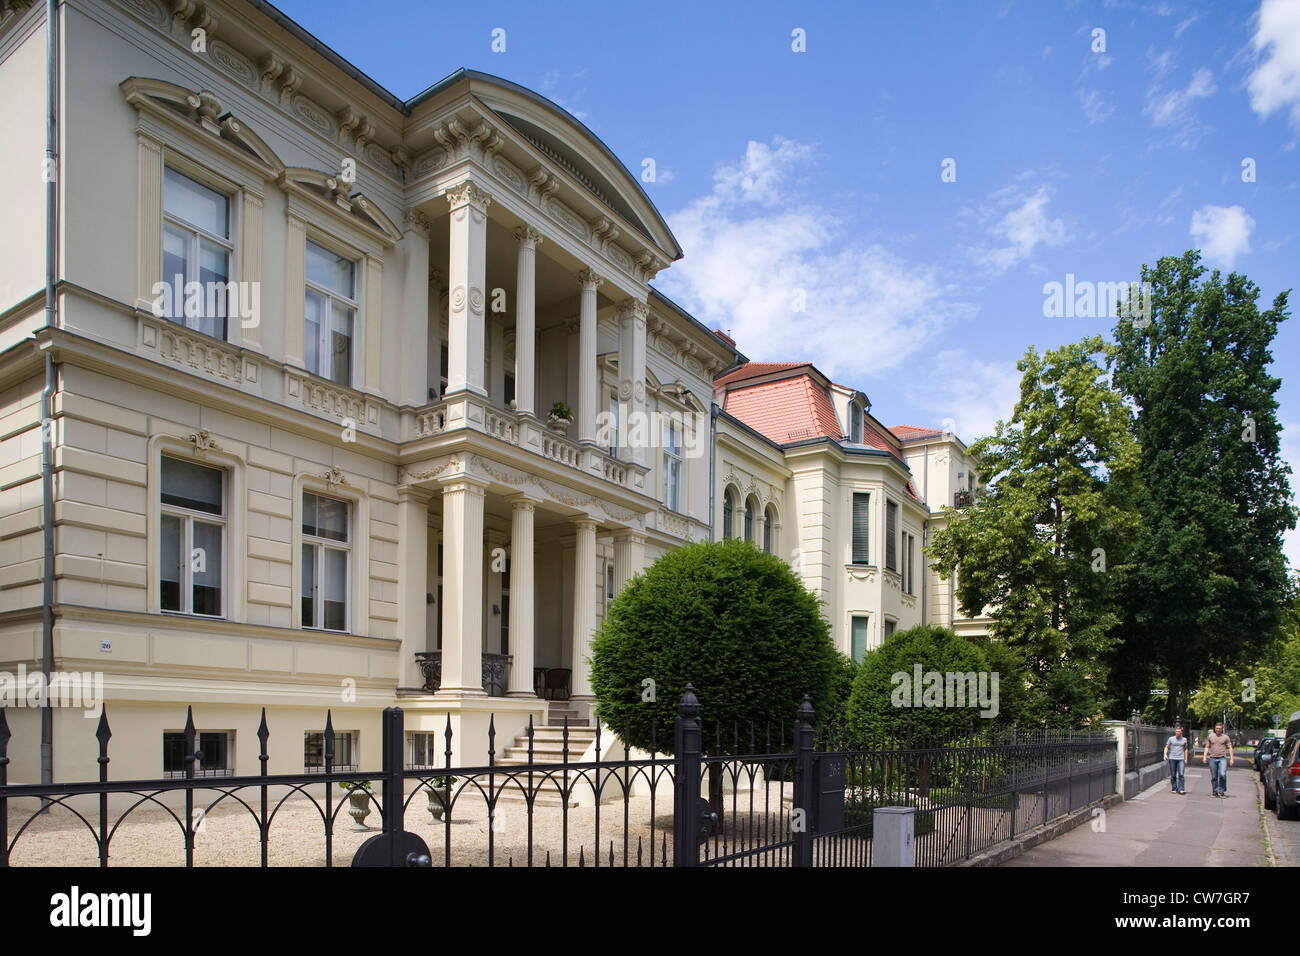 Europe, Germany, Brandenburg, Potsdam, secret forbidden zones of Kgb at the time of GDR - Stock Image